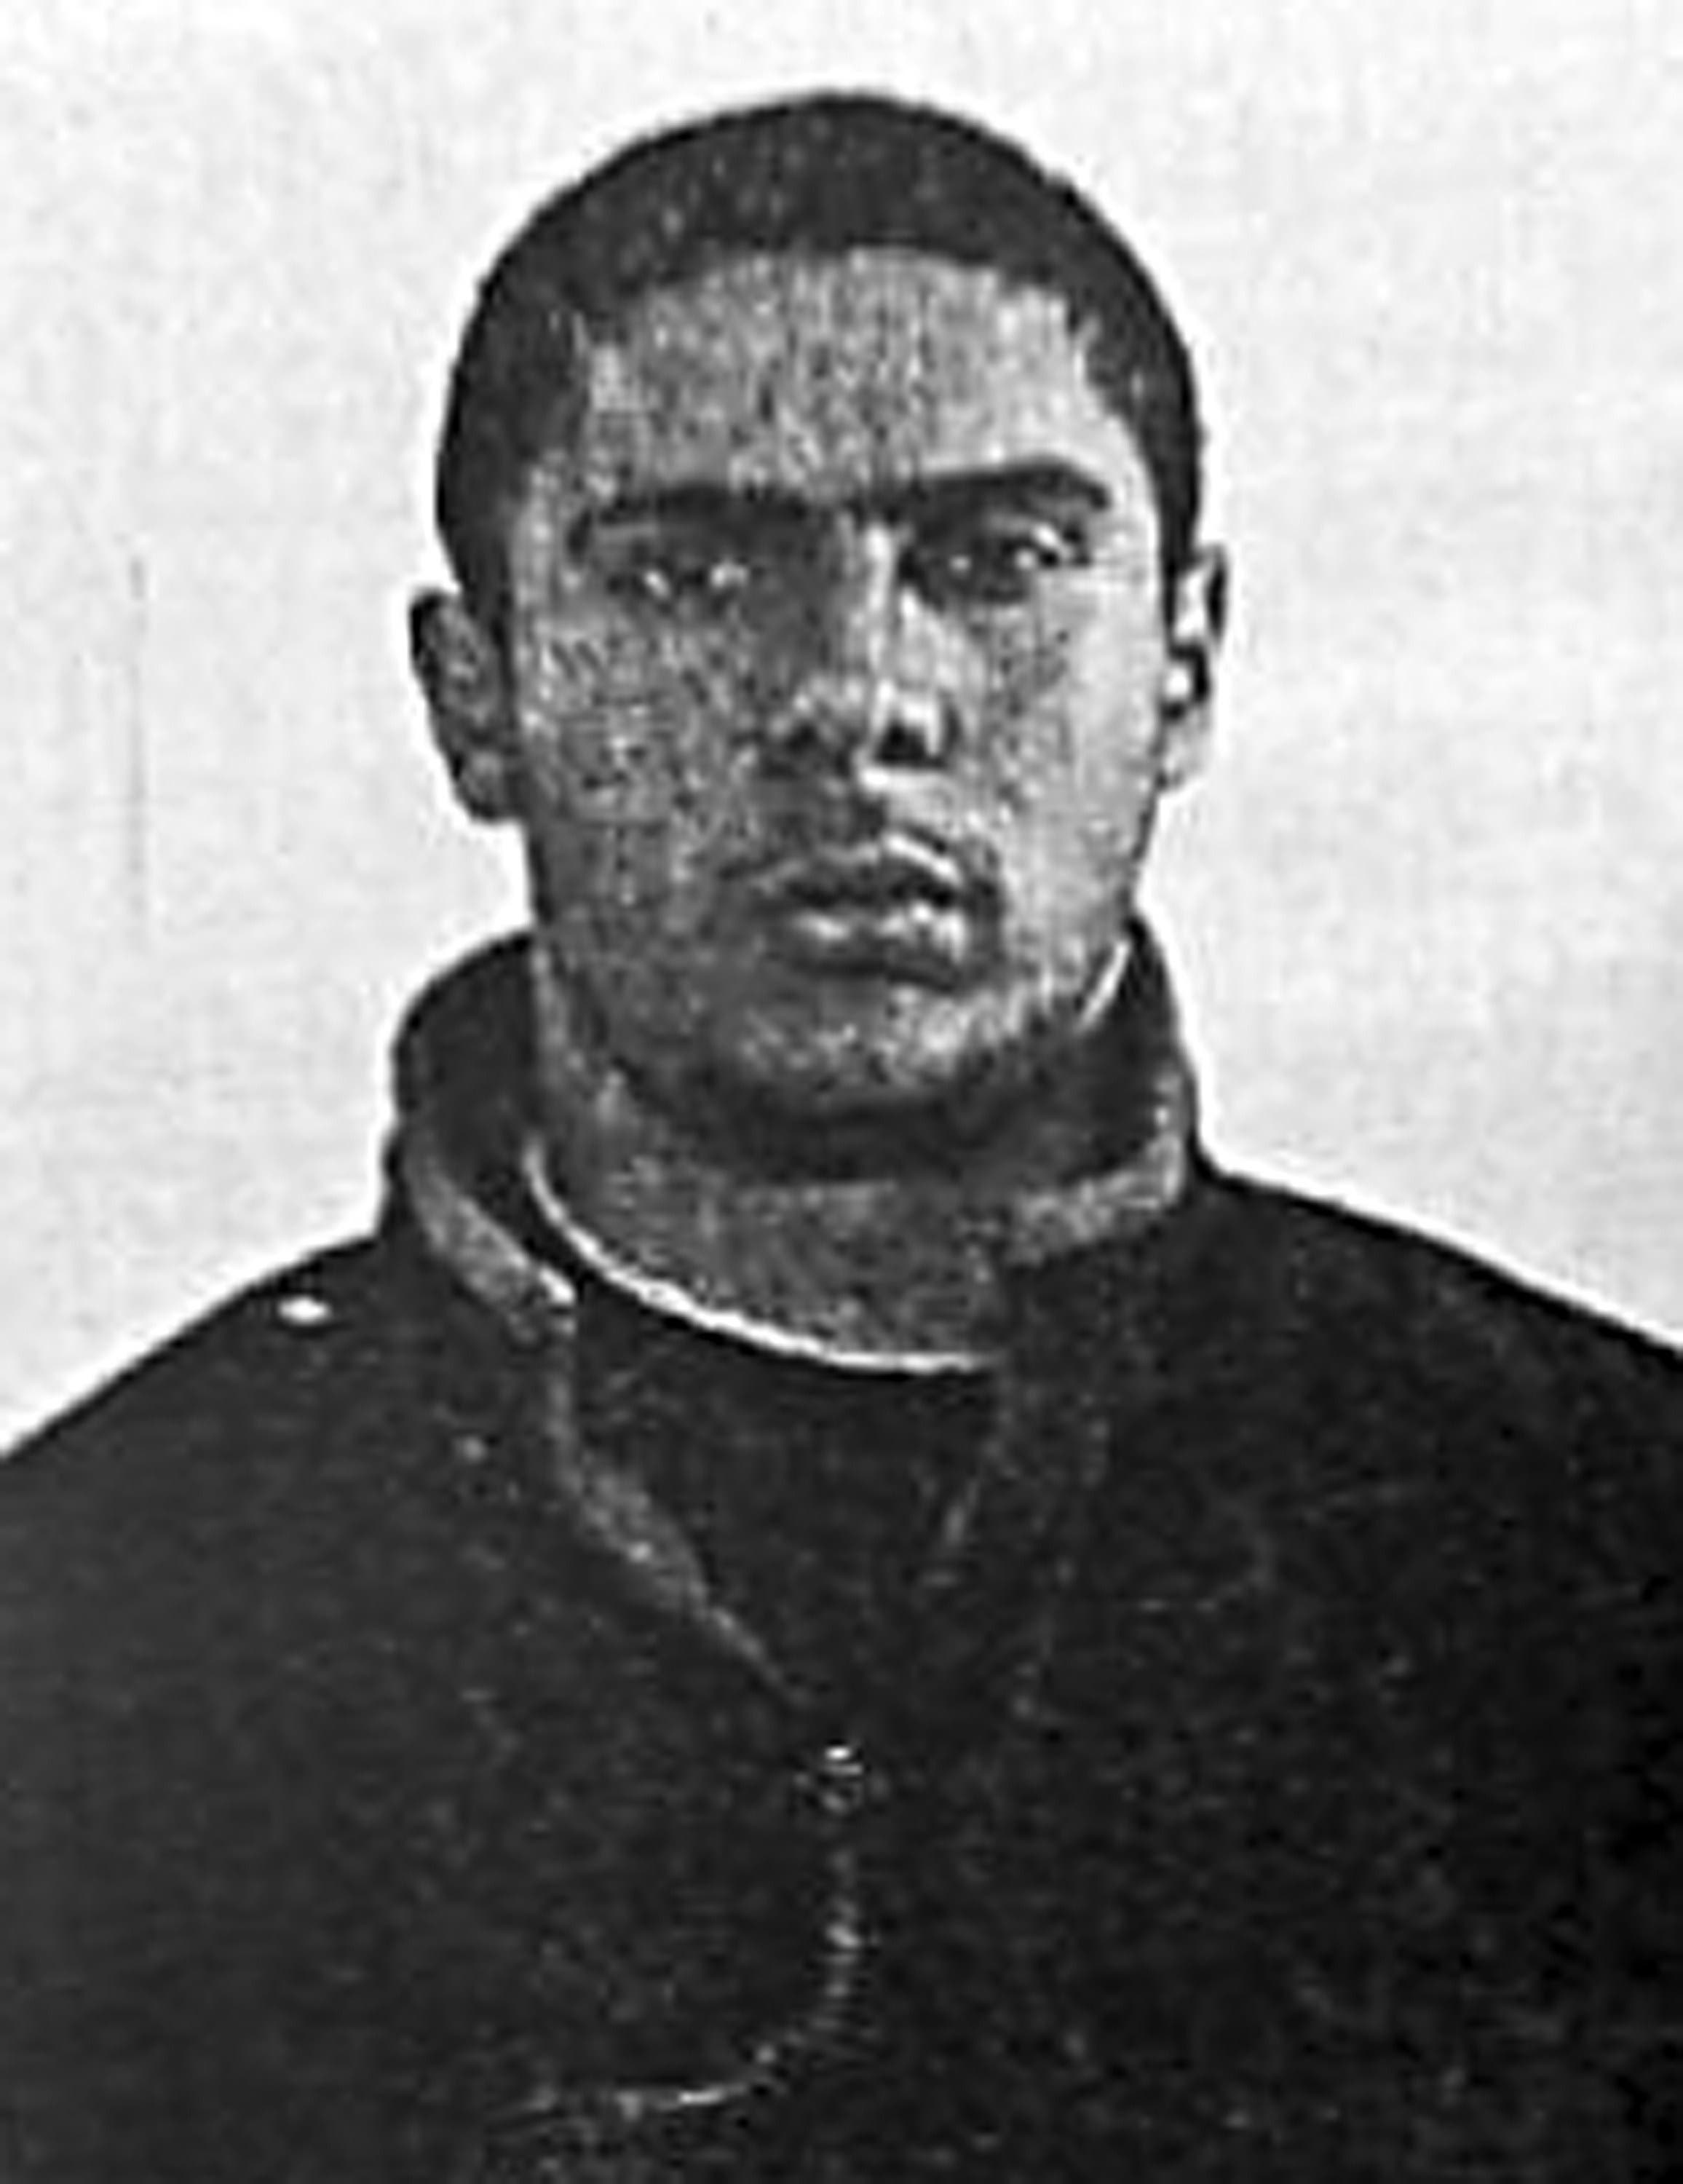 A picture released on June 1, 2014 shows the 29-year-old suspected gunman Mehdi Nemmouche. (AFP)